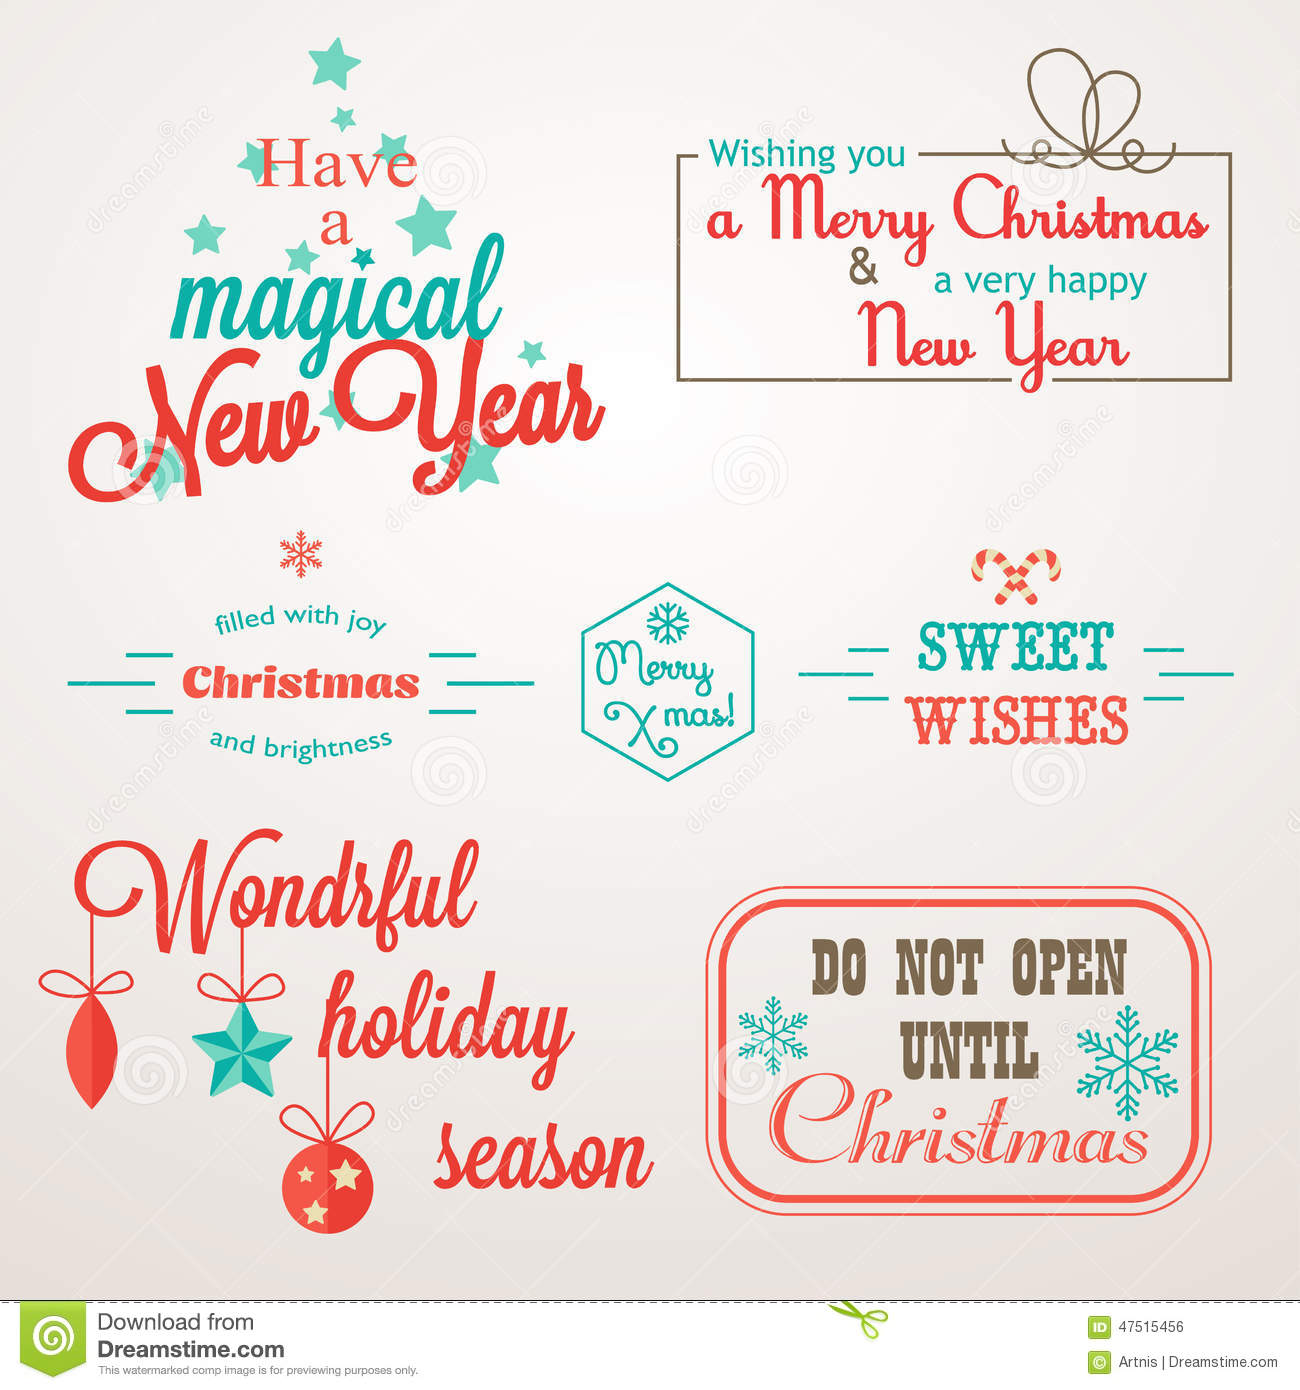 New Year Greetings Phrases Merry Christmas And Happy New Year 2018